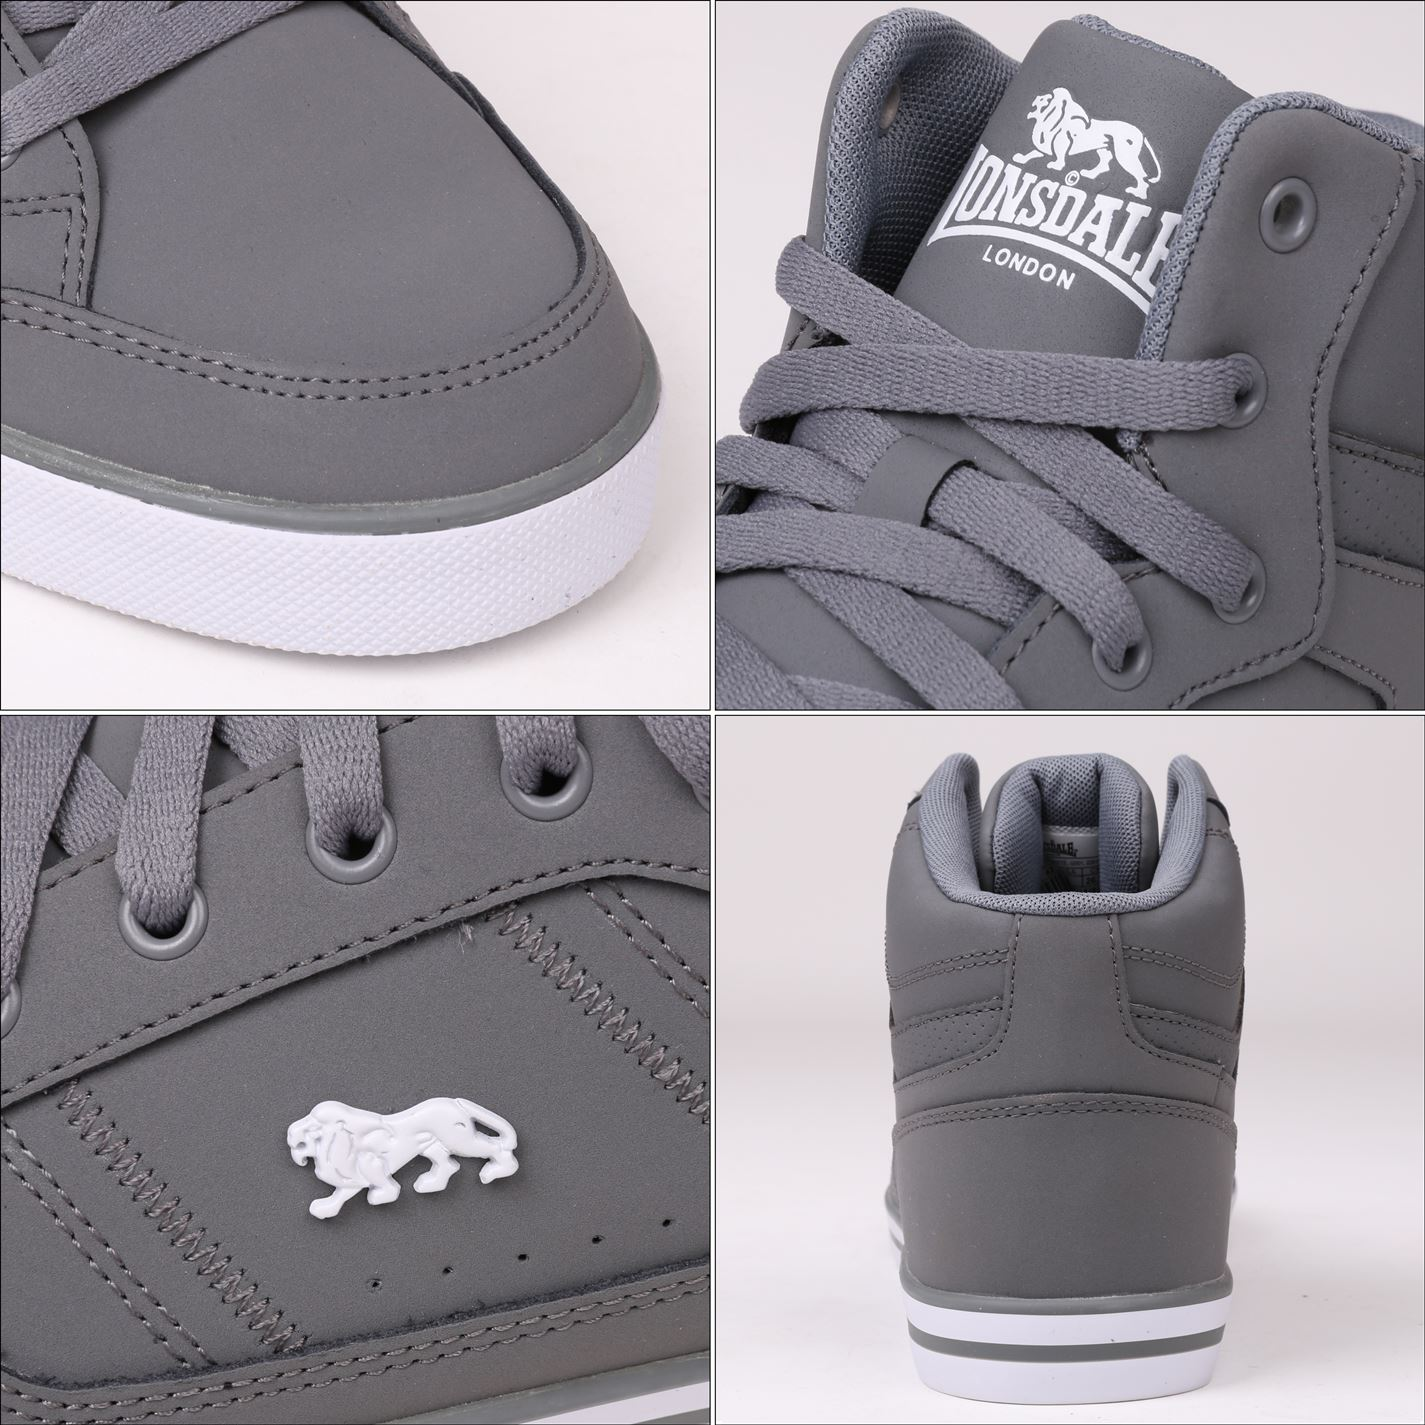 Lonsdale Gents homme Canons Hi Top Sneakers Baskets Lacets Casual Logo